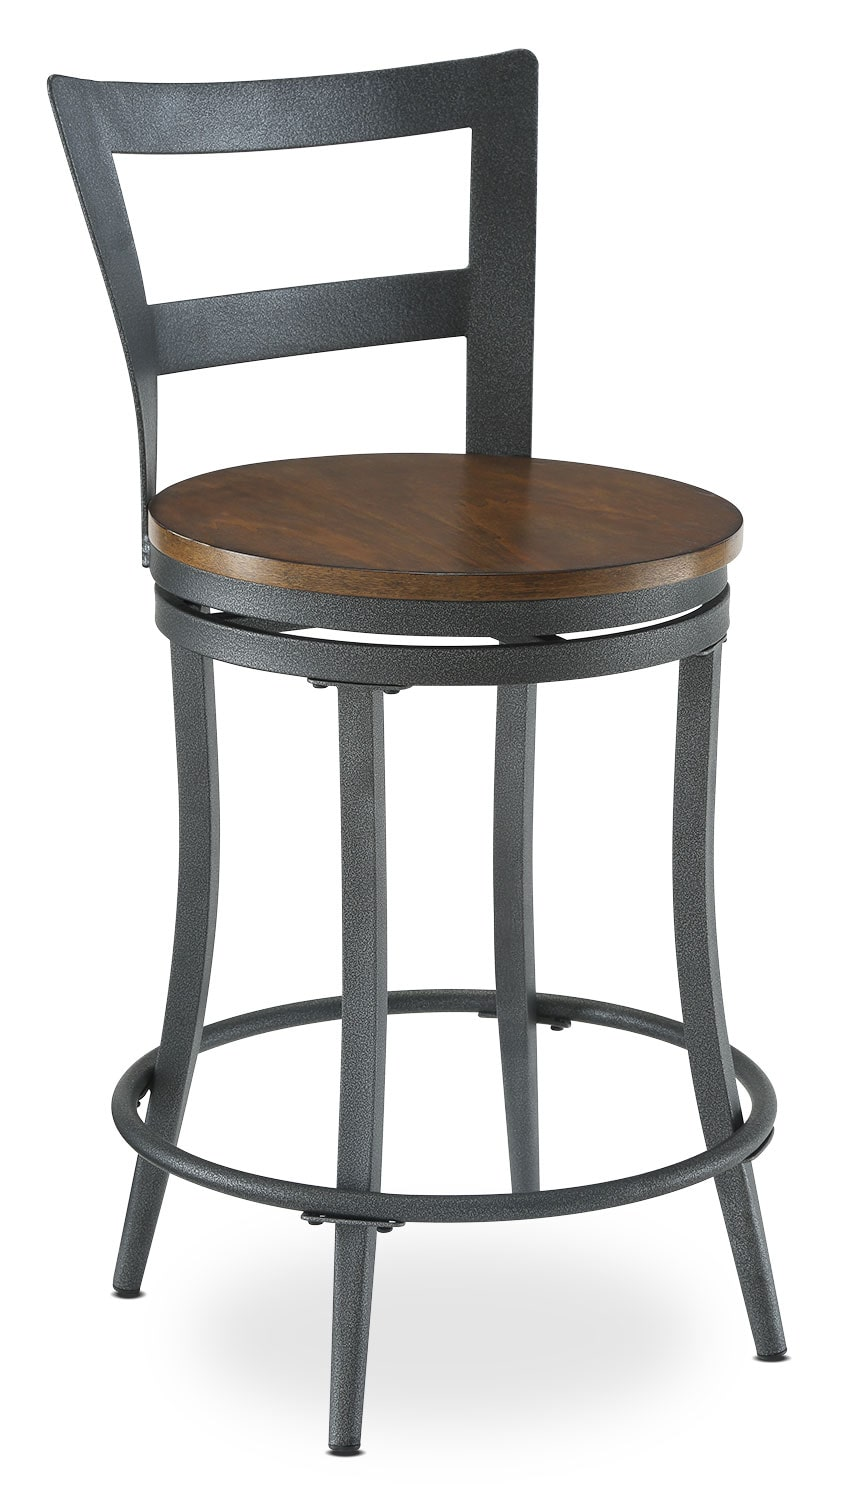 Dining Room Furniture - Nolita Counter-Height Chair